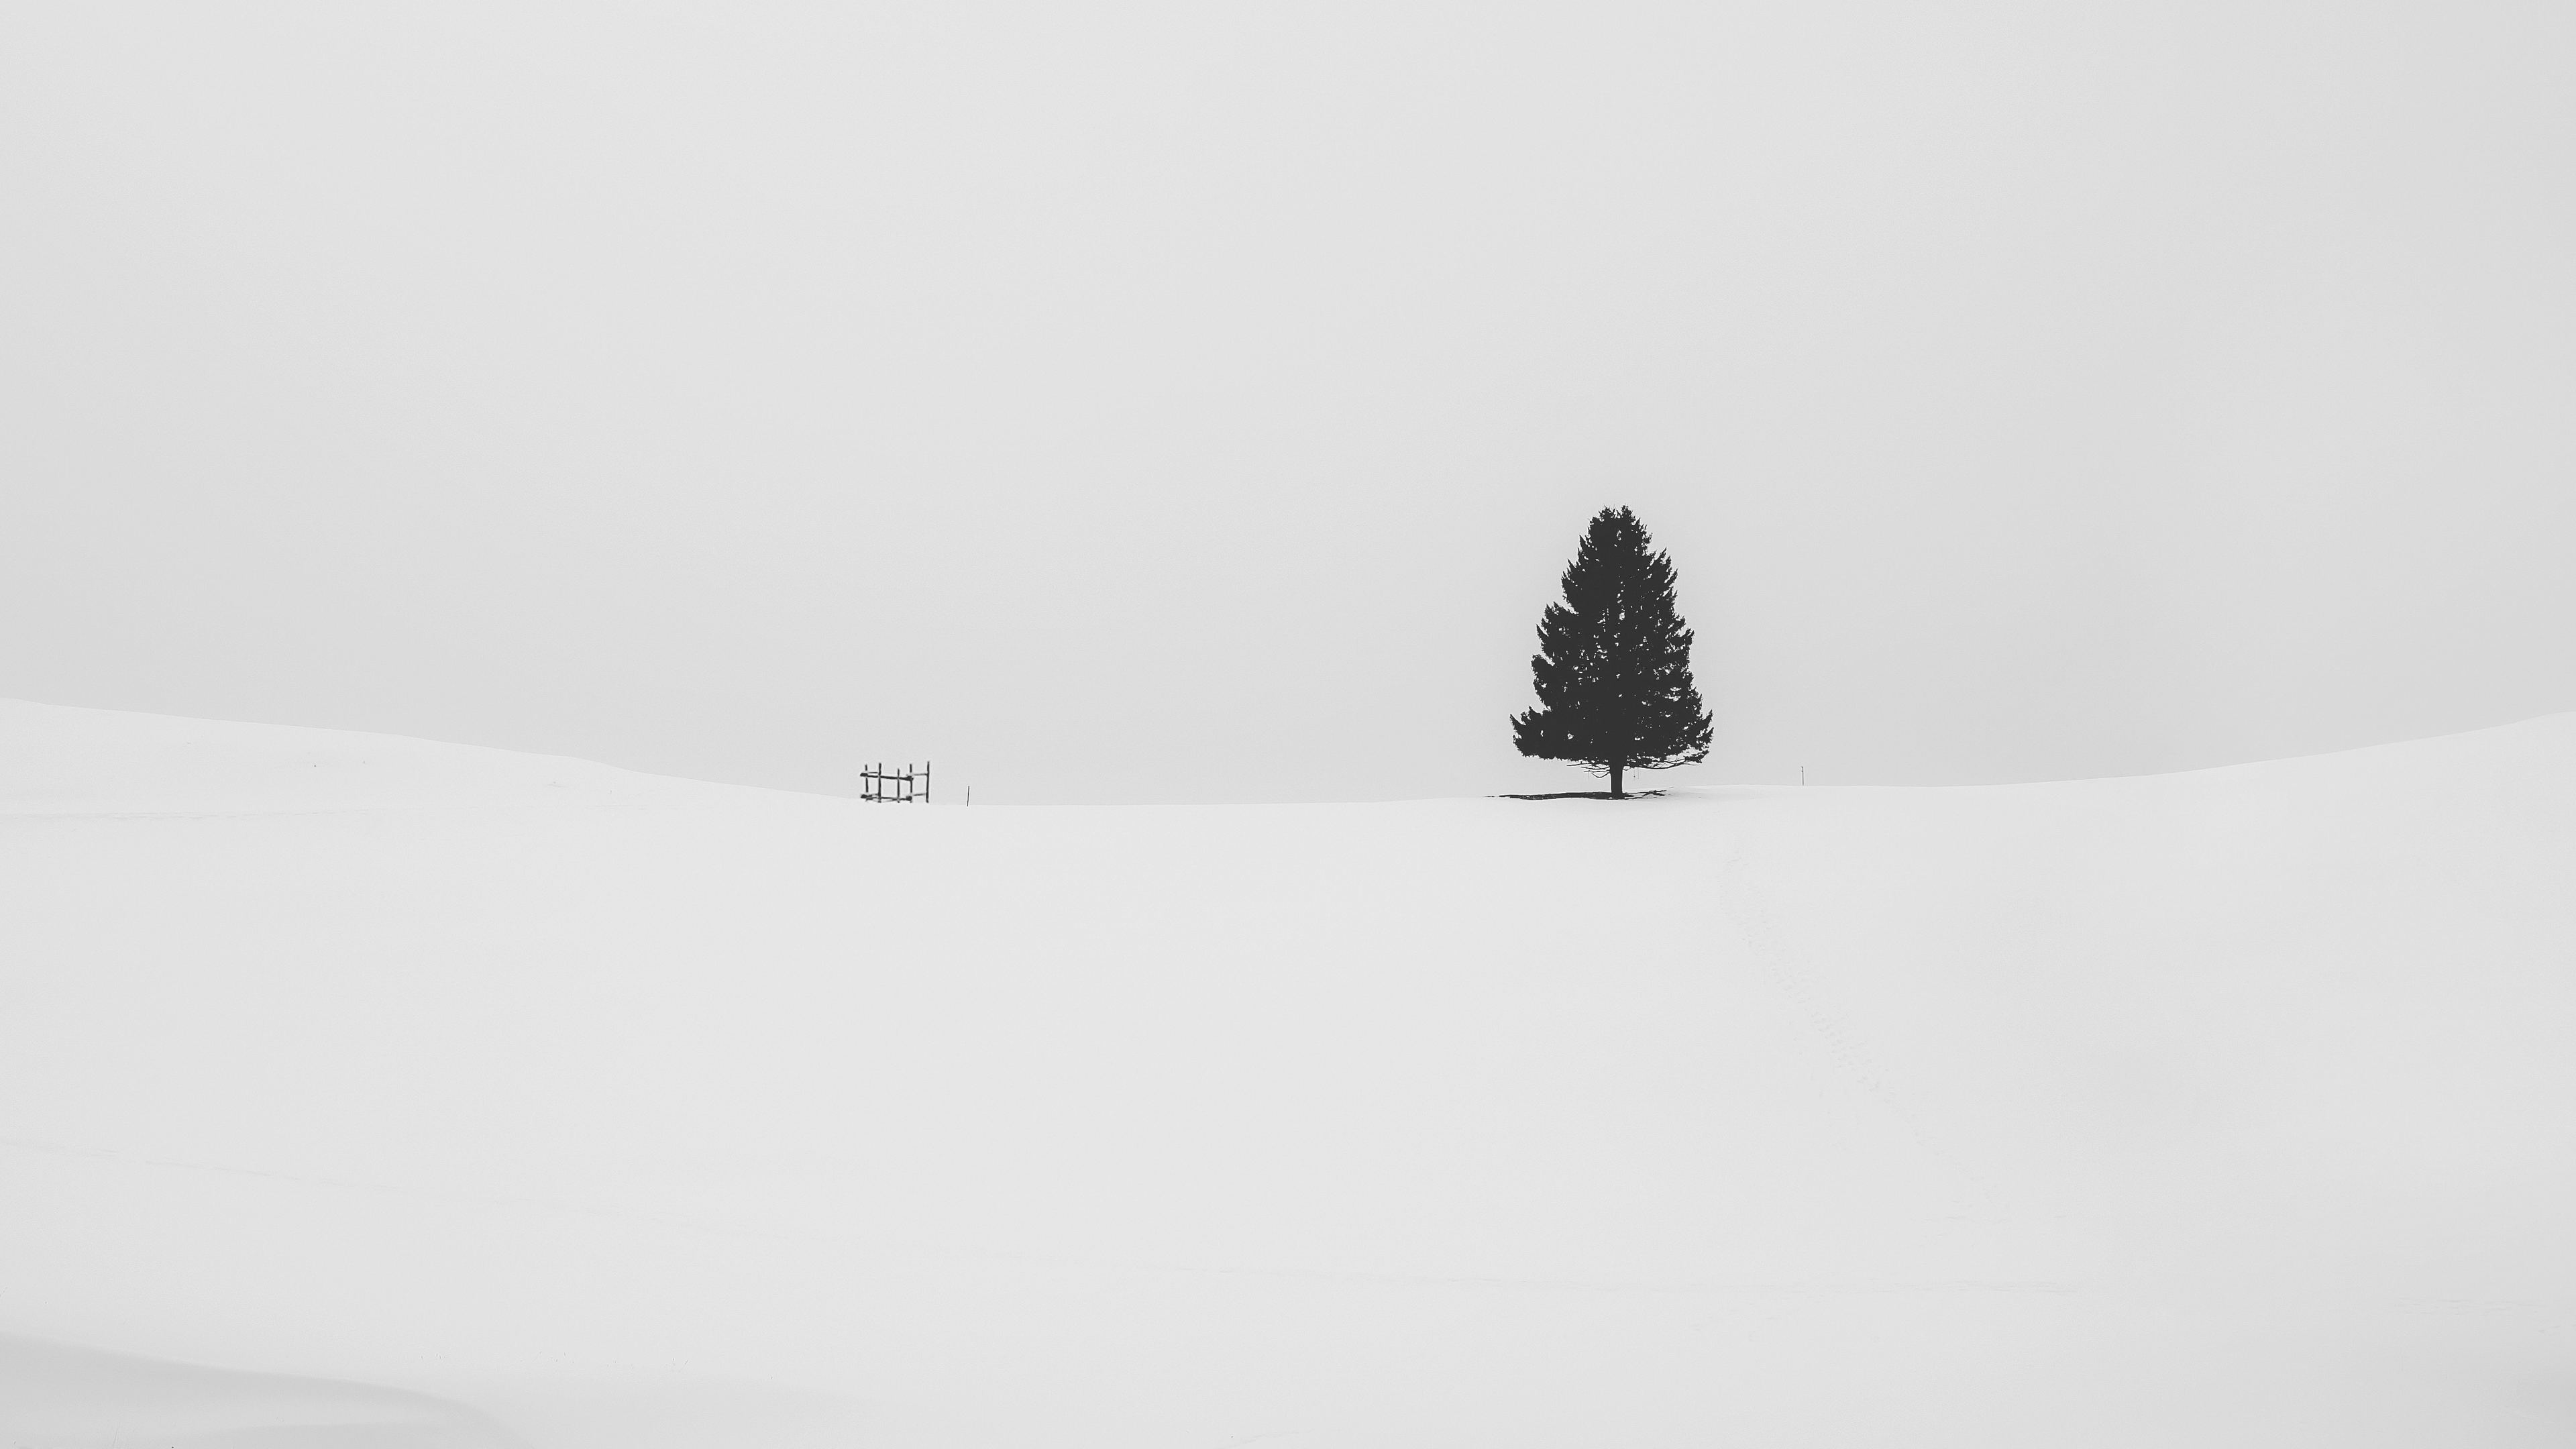 Wallpaper 4k Snow Tree Minimal 4k 4k Wallpapers Hd Wallpapers Minimalism Wallpapers Minimalist Wallpapers Nature Wallpapers Snow Wallpapers Tree Wallpapers